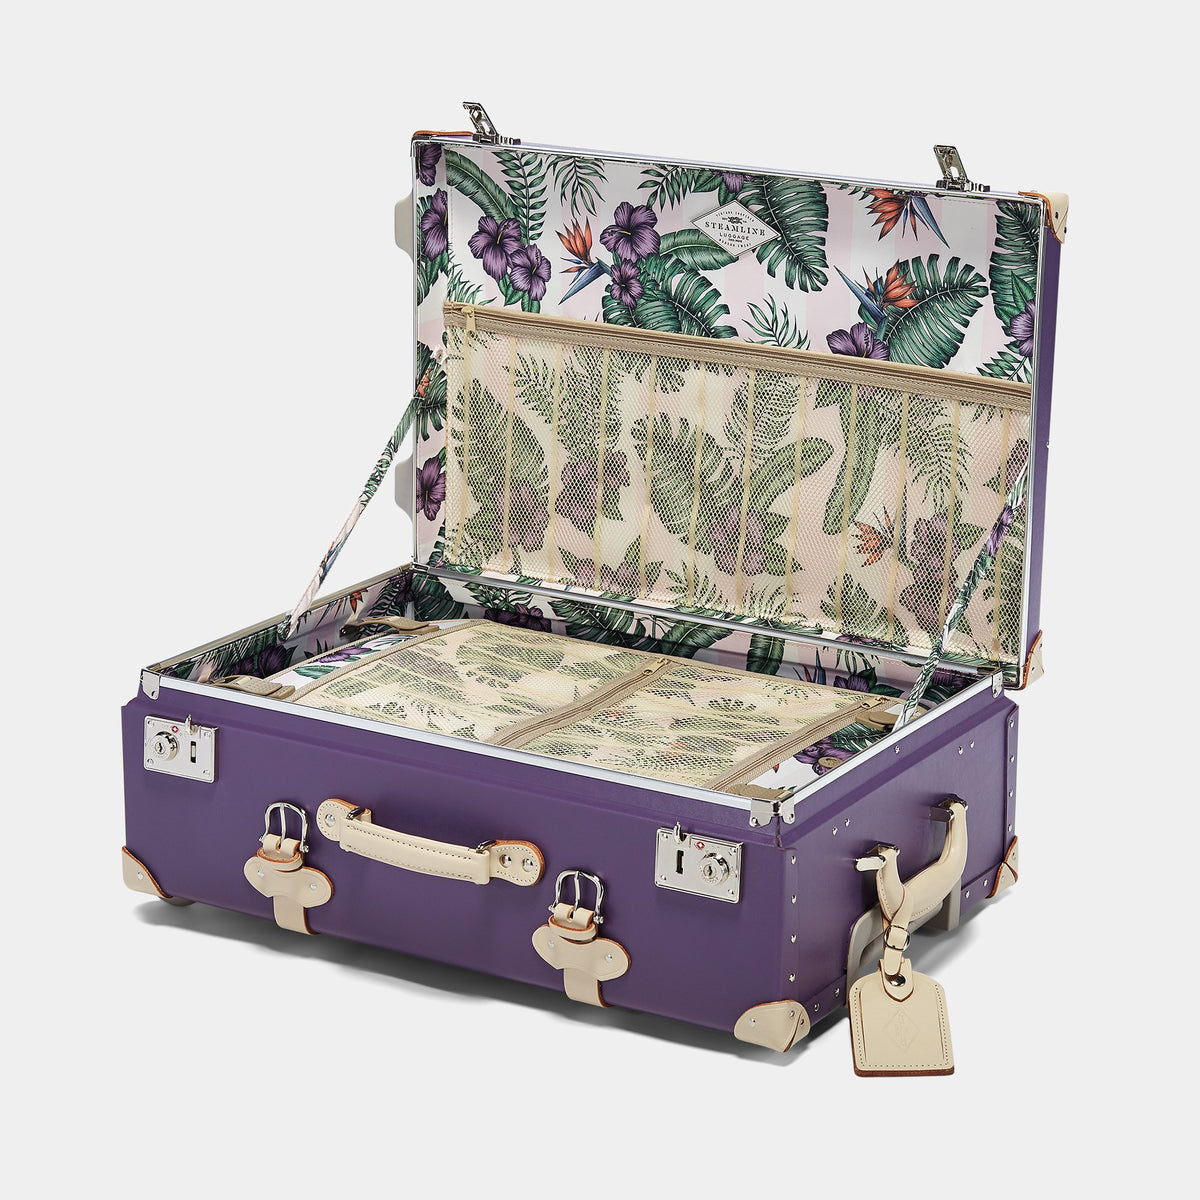 The Botanist Stowaway in Purple - Vintage-Inspired Suitcase - Interior